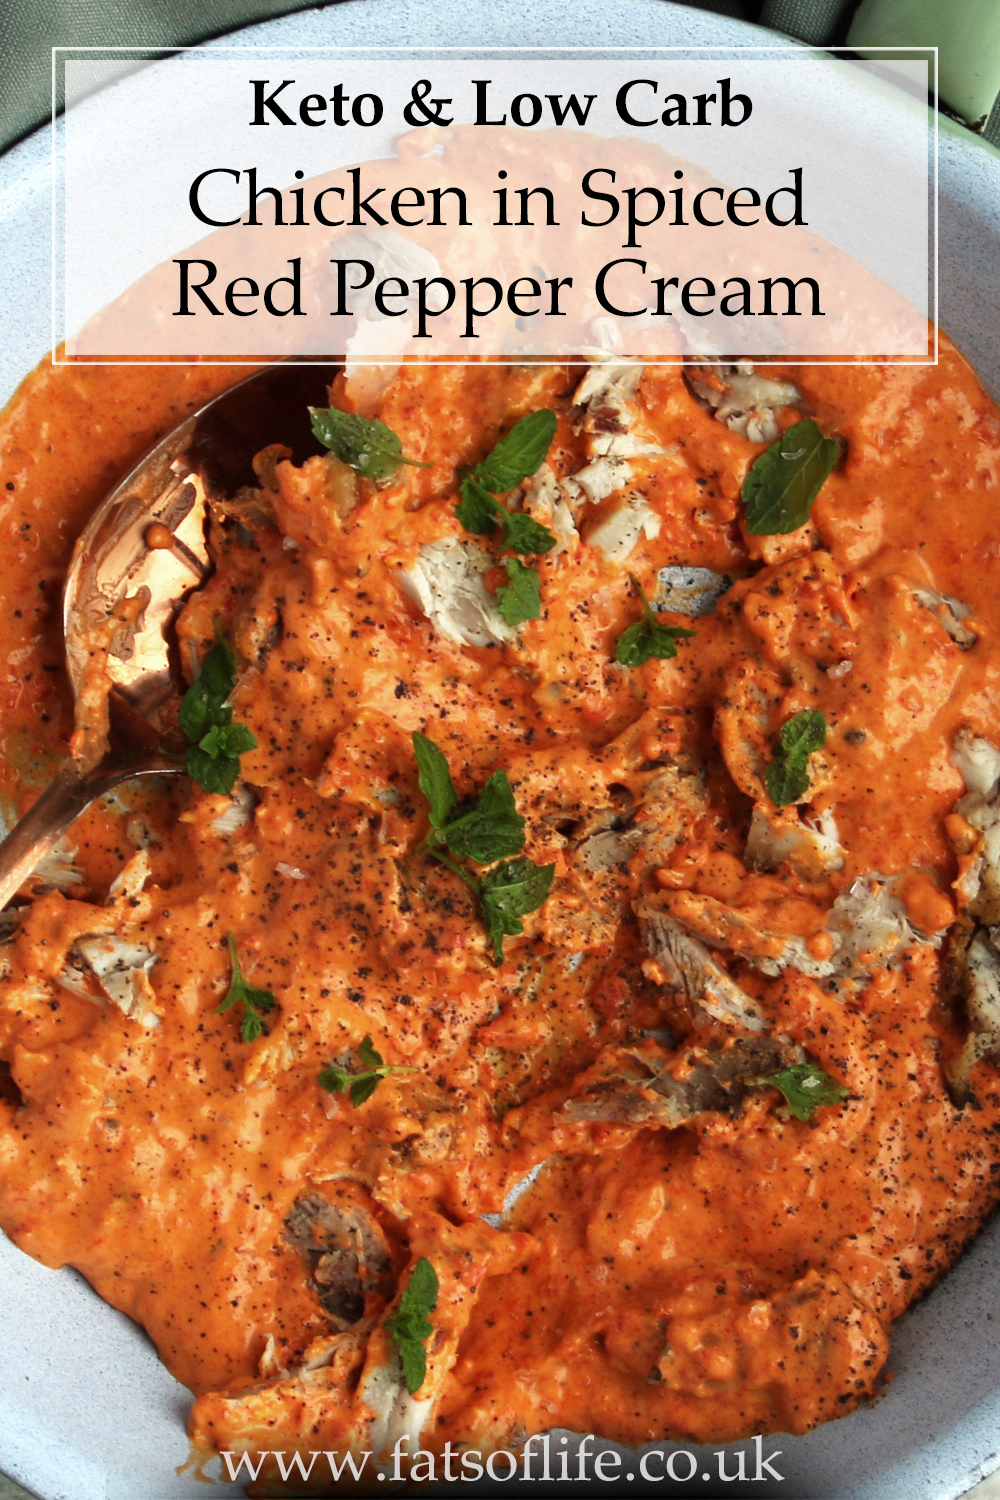 Chicken with Spiced Red Pepper Cream (Keto)